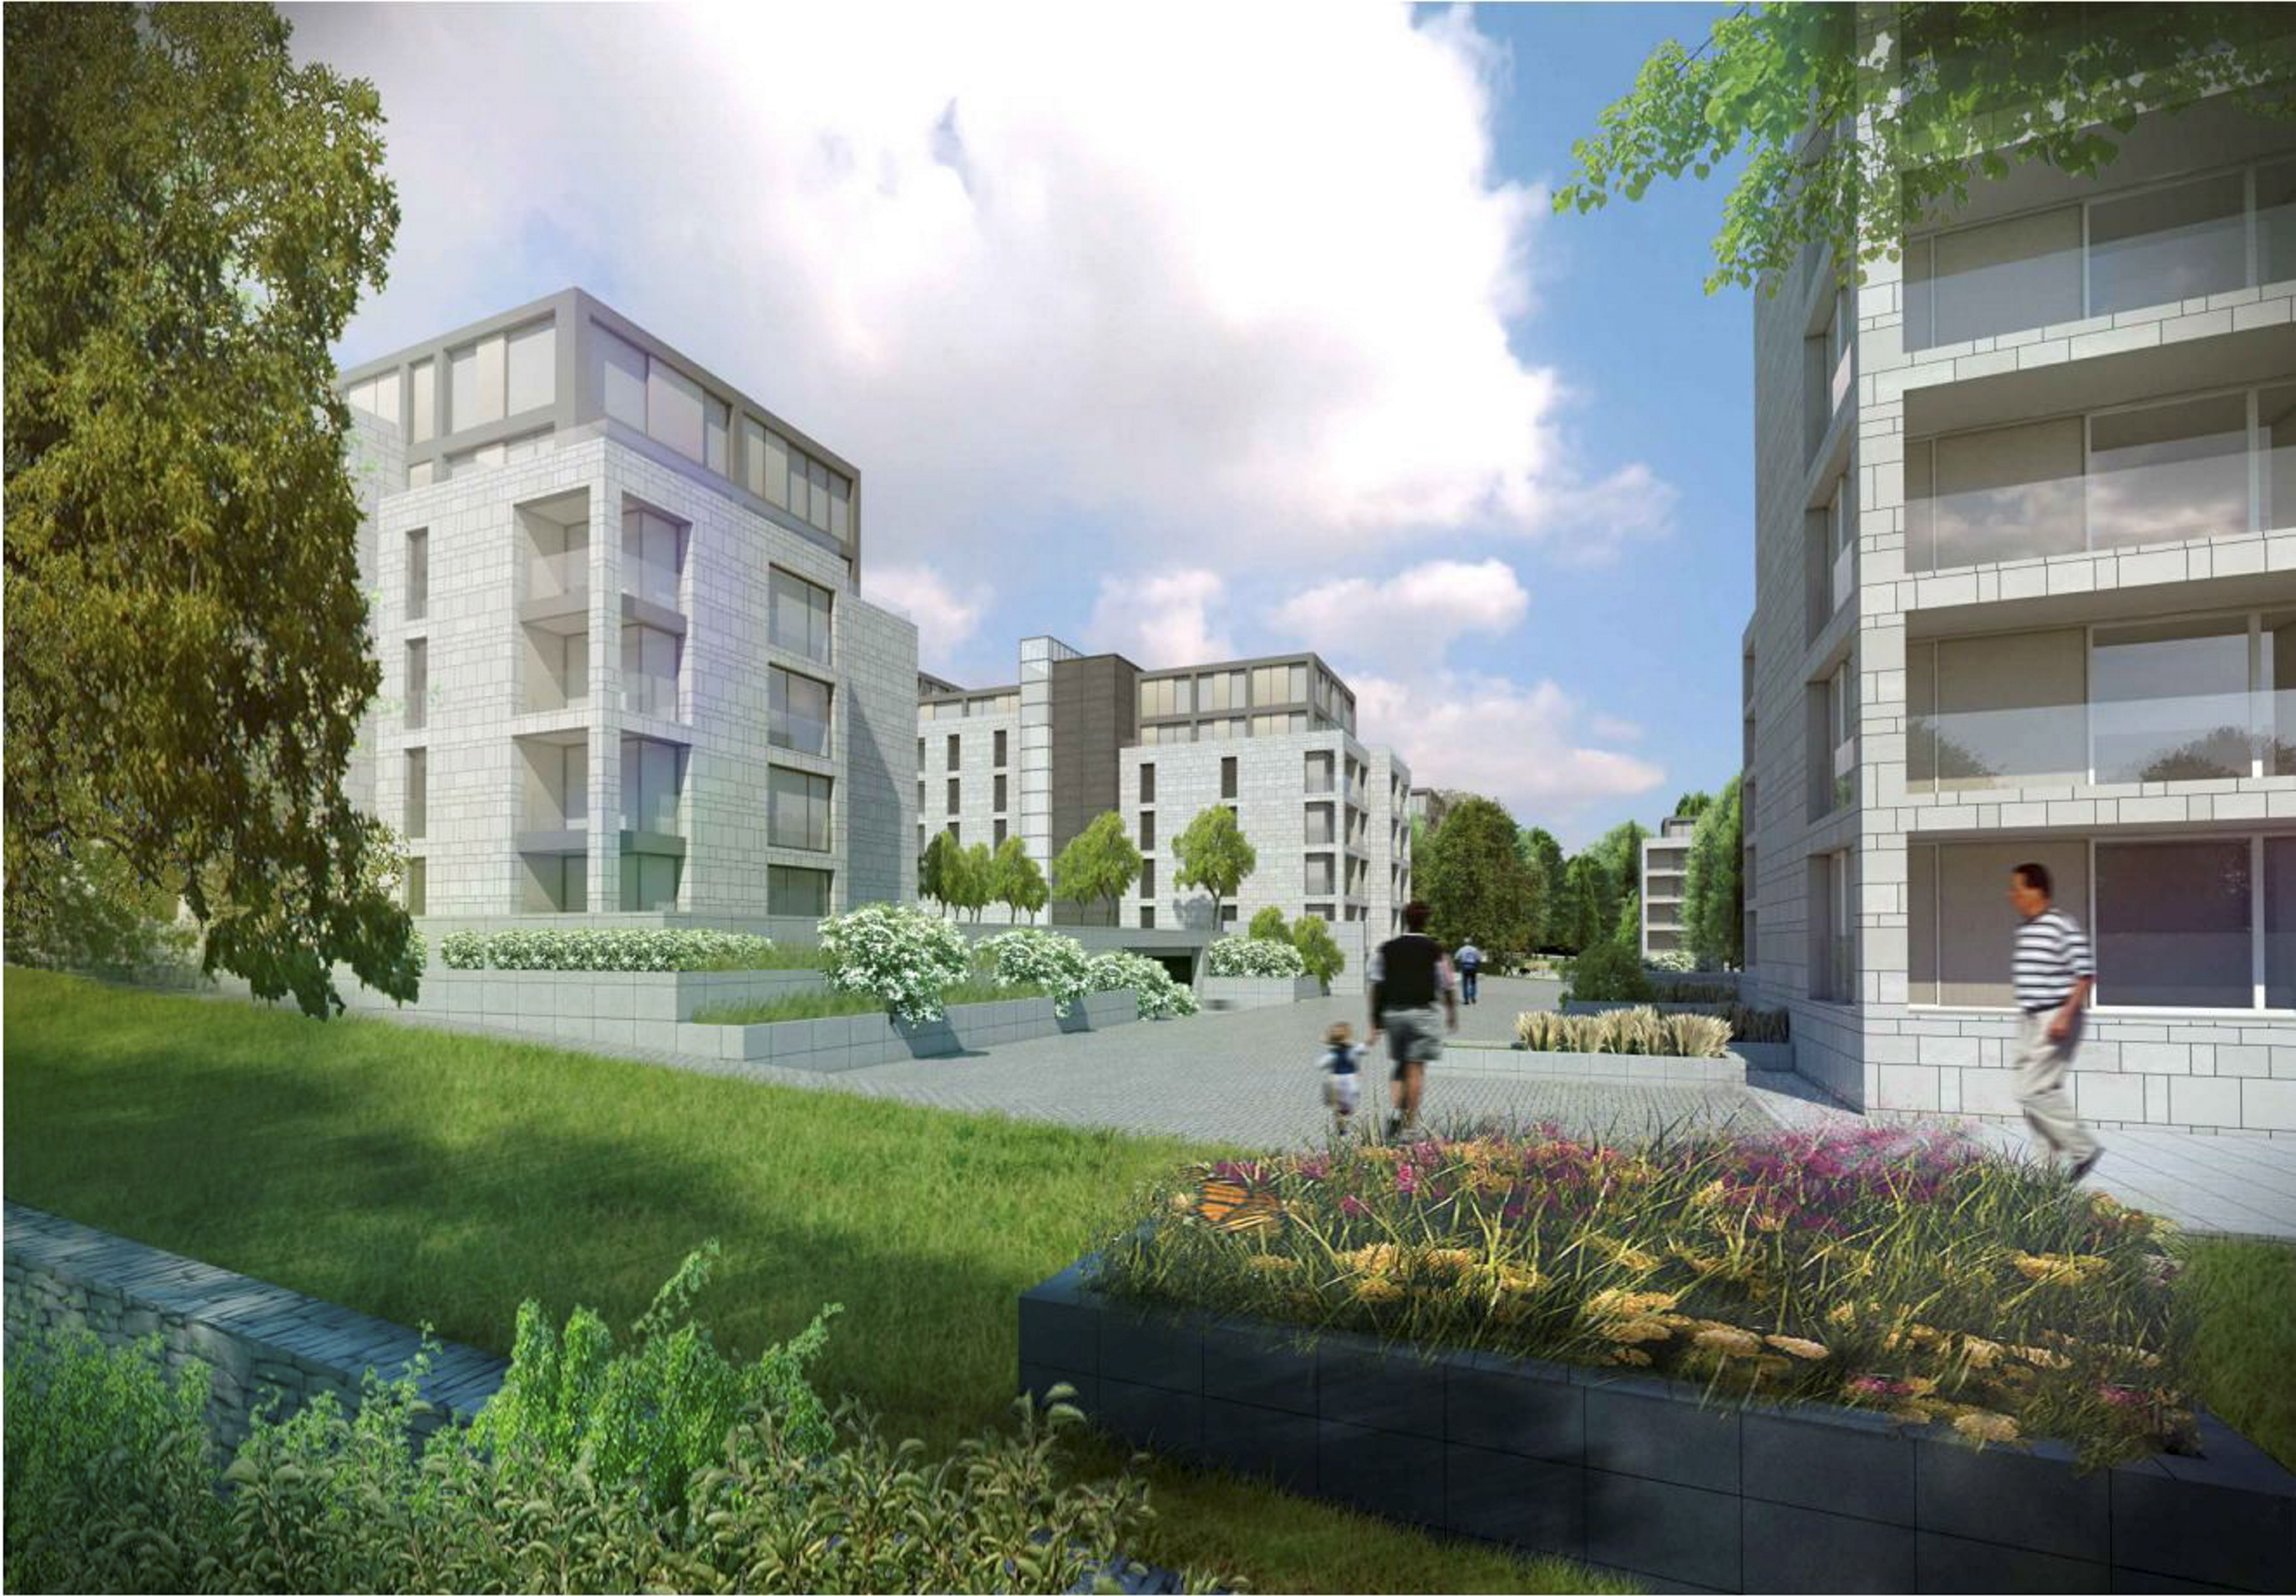 Plans for  a housing development on the site of the Marcliffe Hotel will not go ahead.